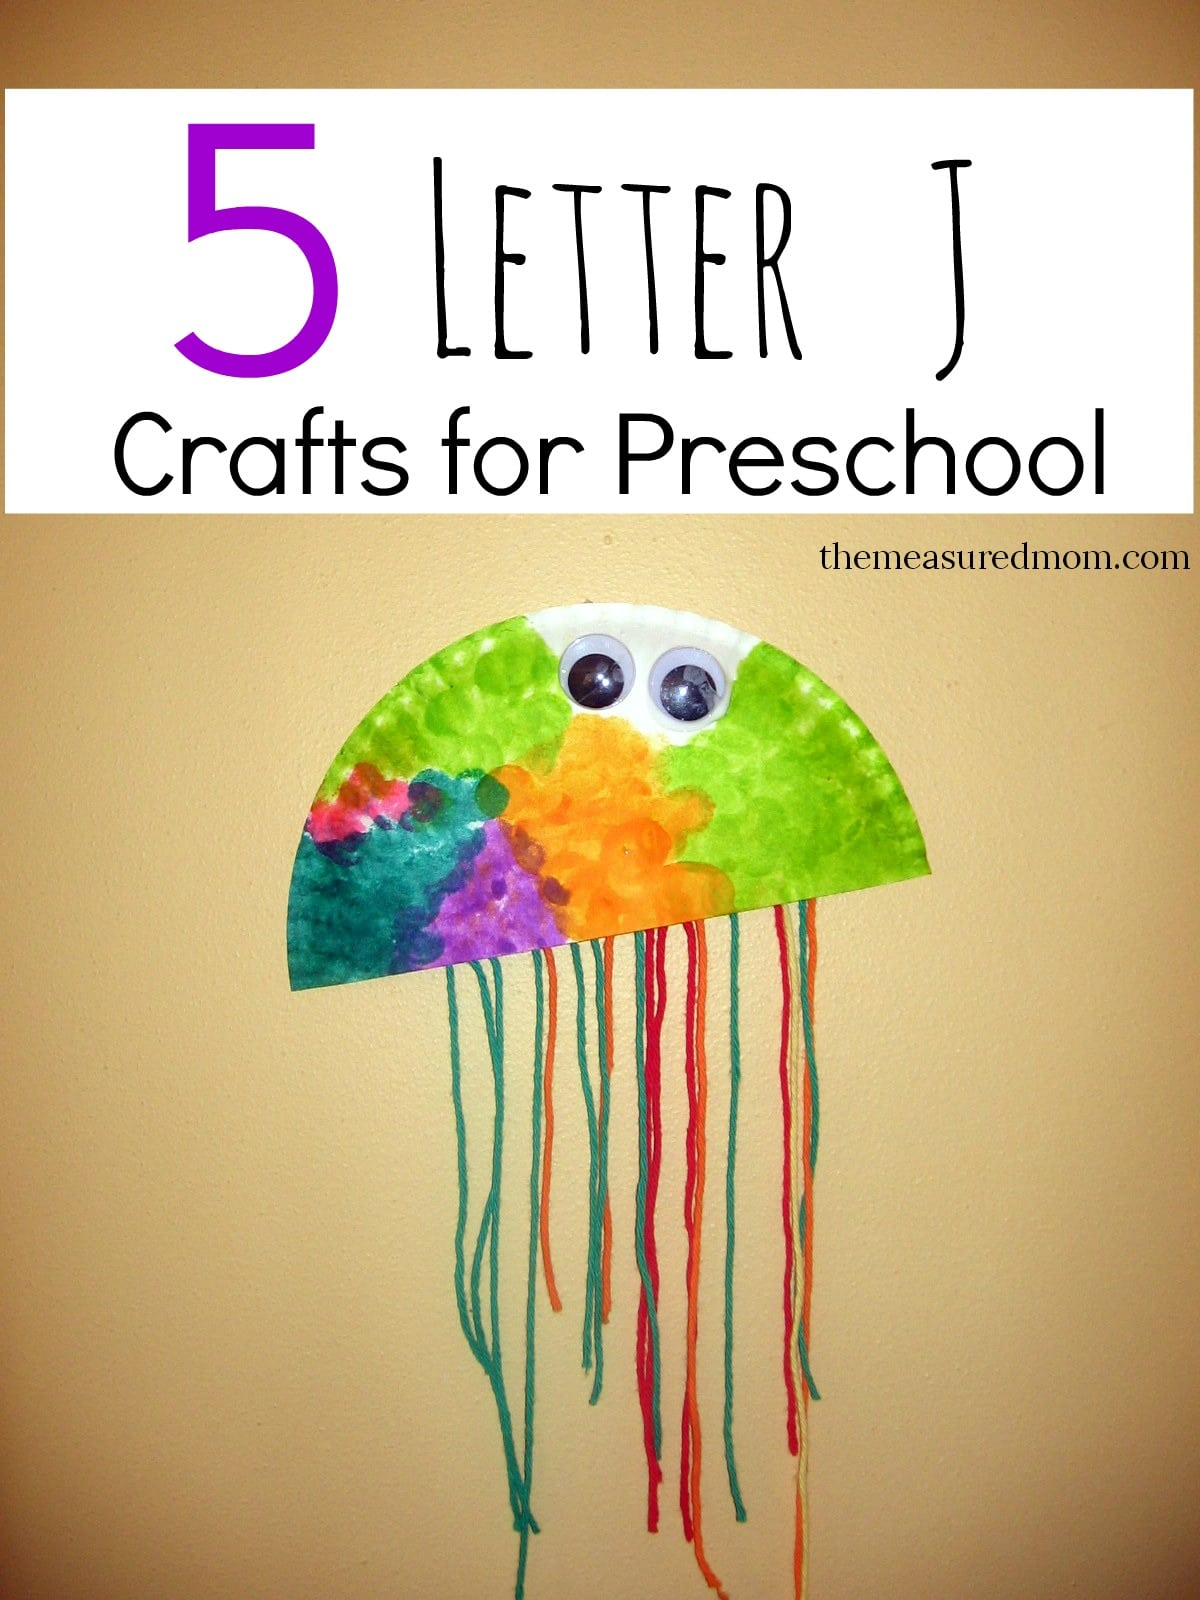 Letter J Crafts for Preschoolers